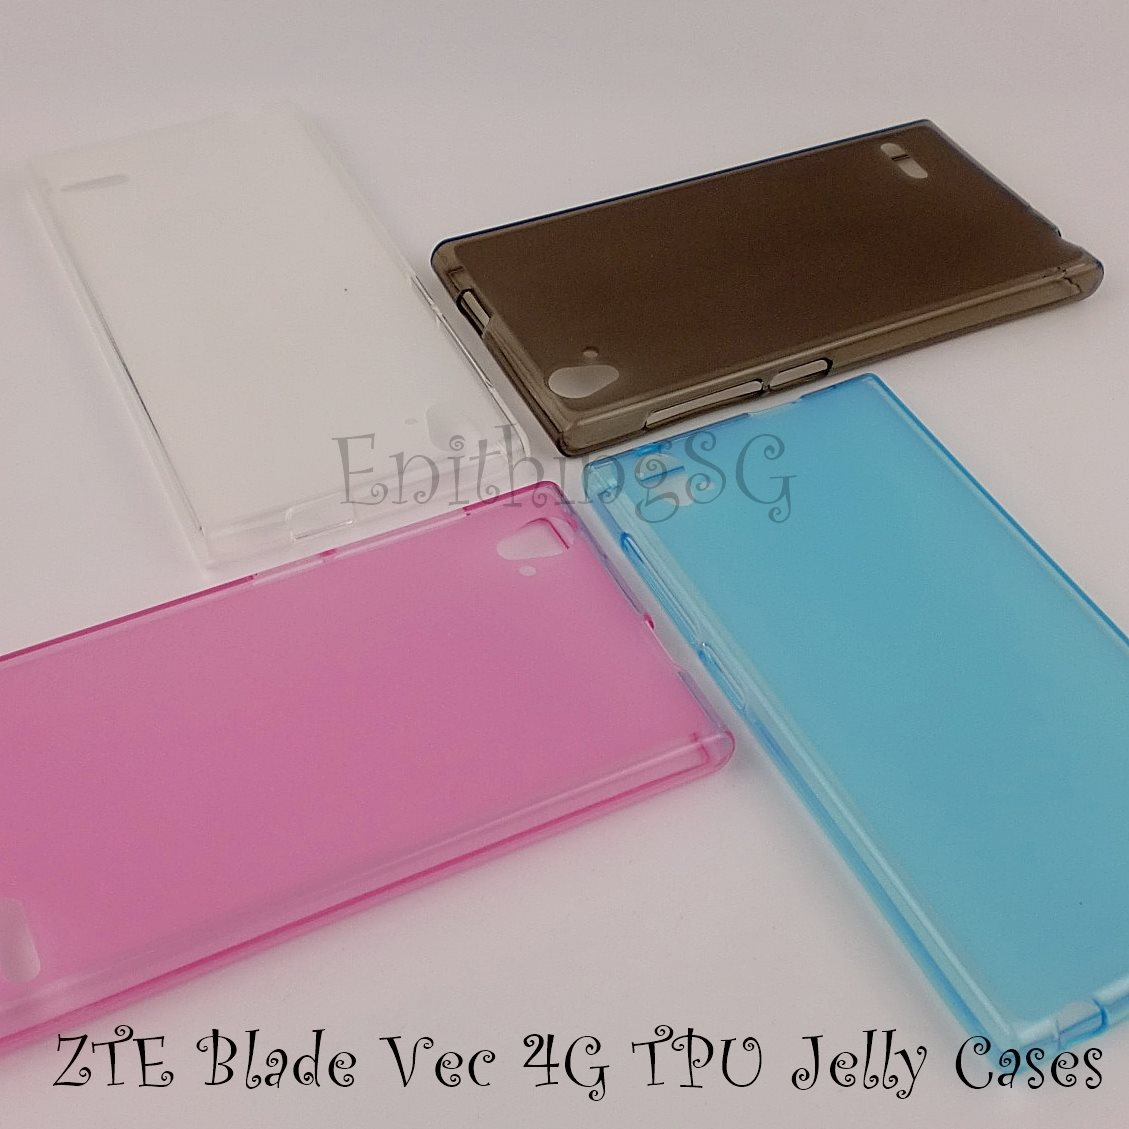 Every Need Want Day Zte Blade Lux V830w Vec 4g Tpu Jelly Cases 600 Each